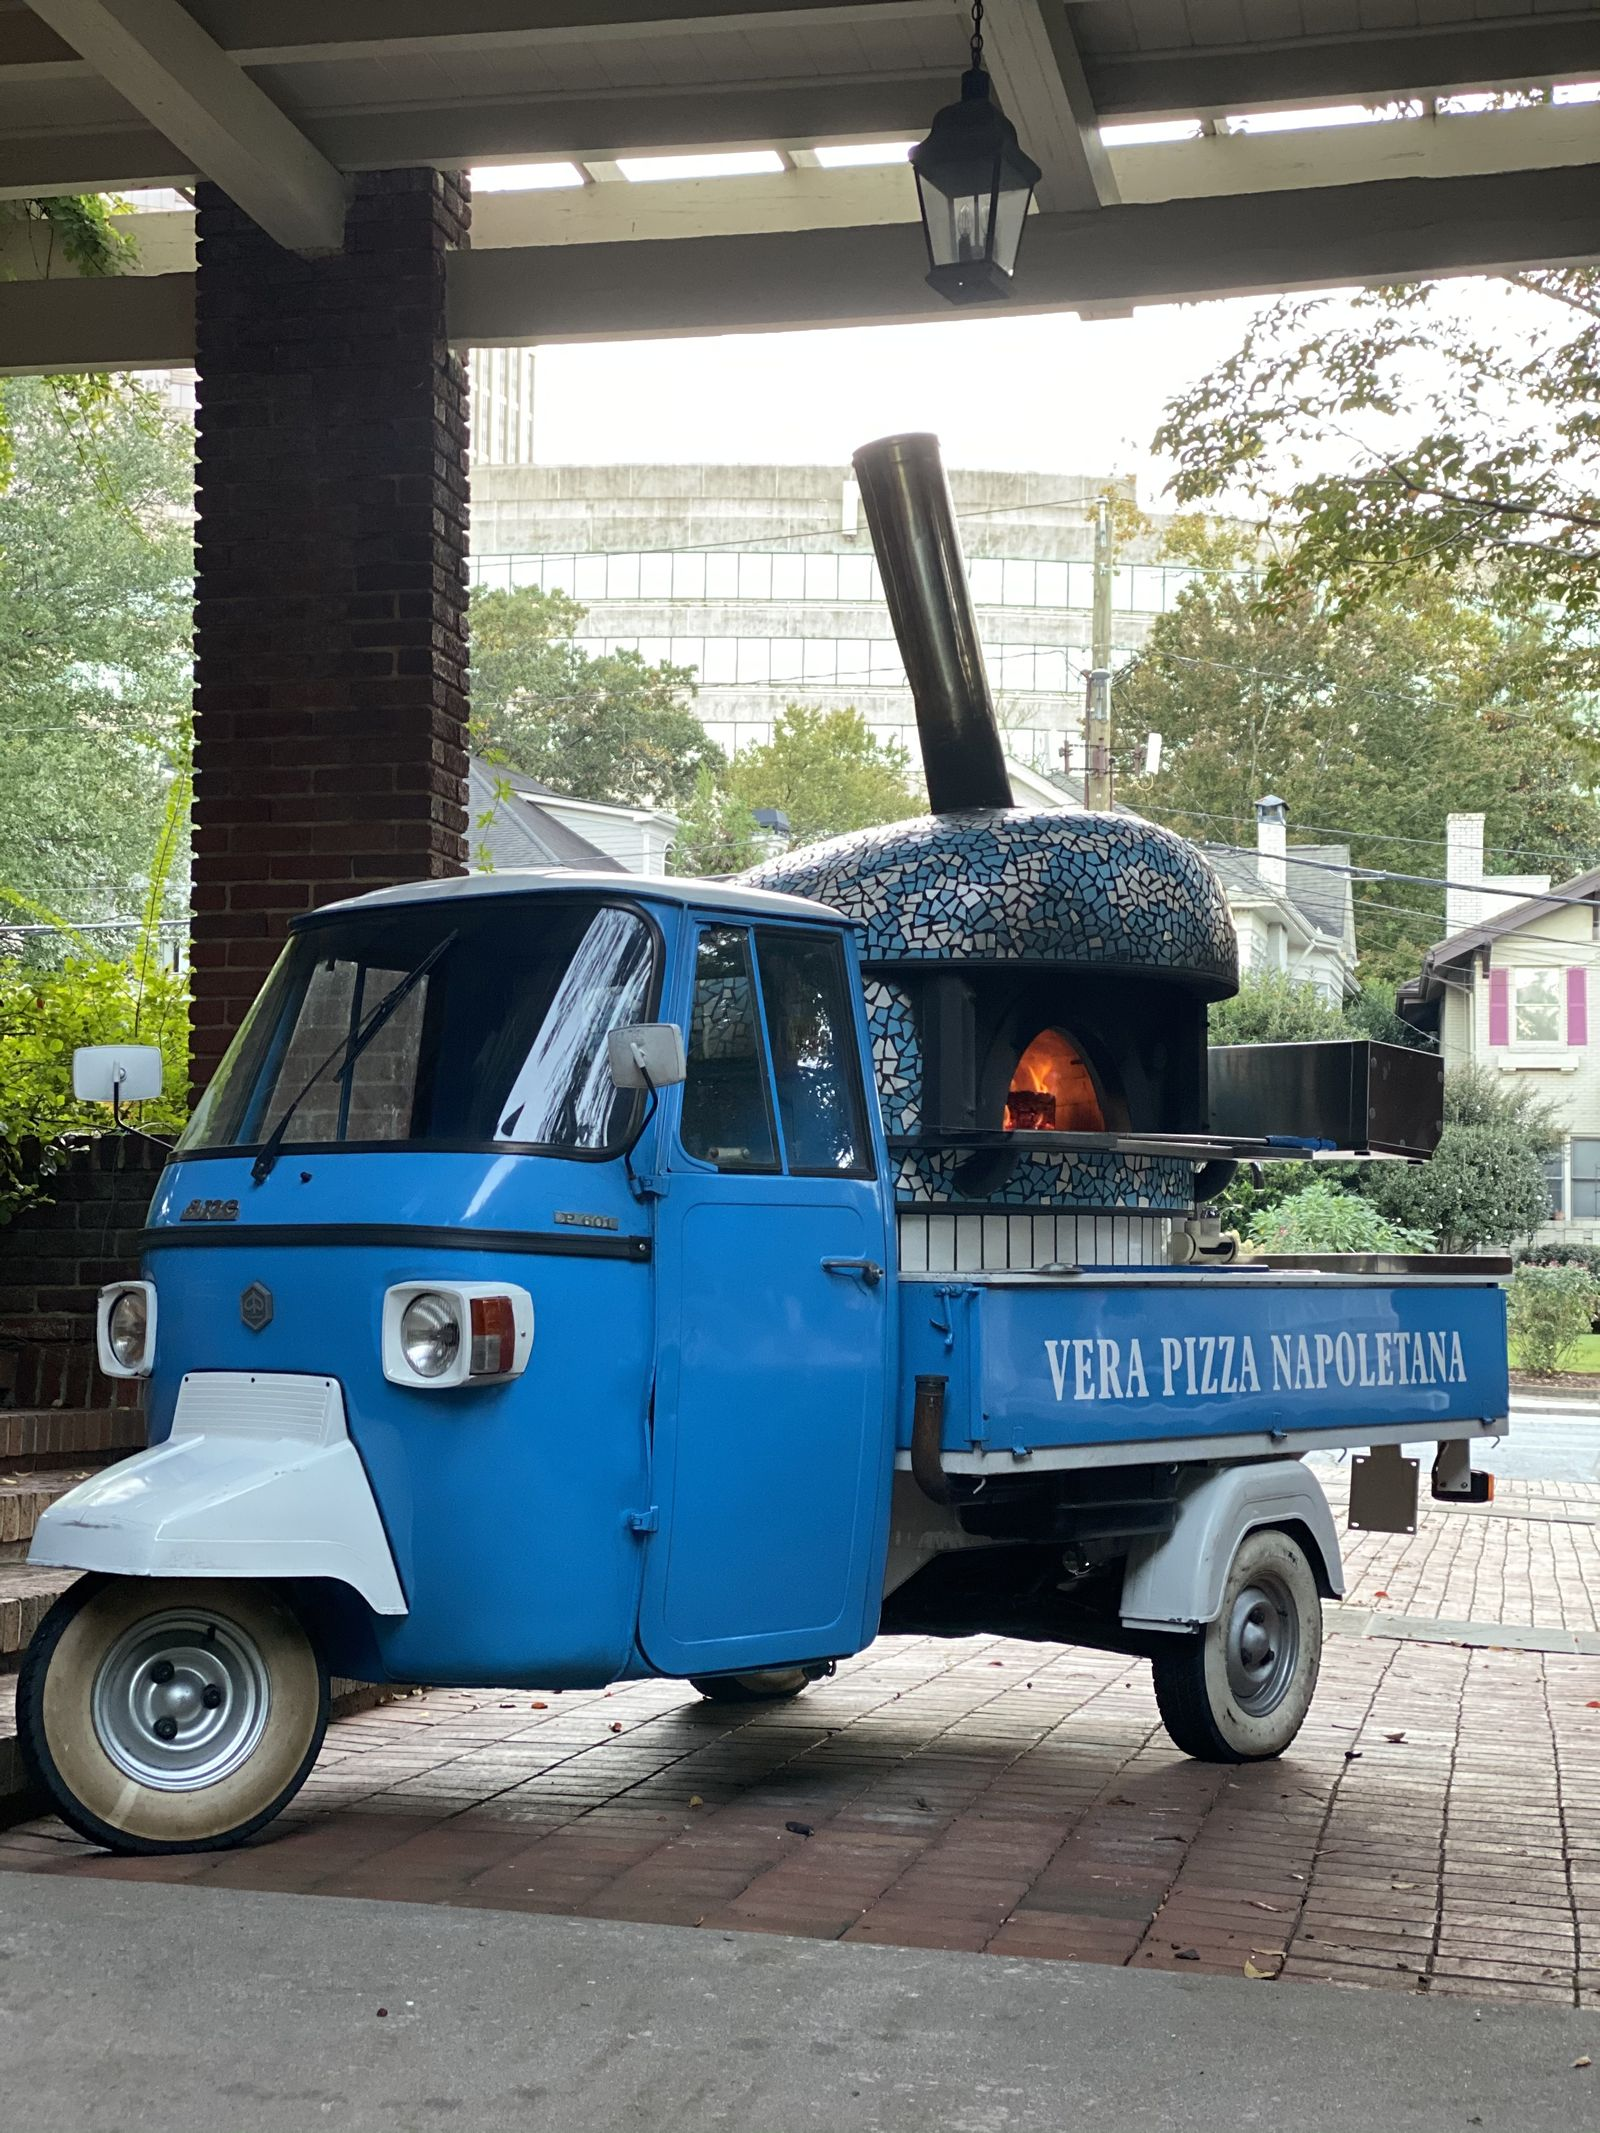 Neapolitan Pizza on Wheels: Atlanta Pizza Truck Has Arrived to the City